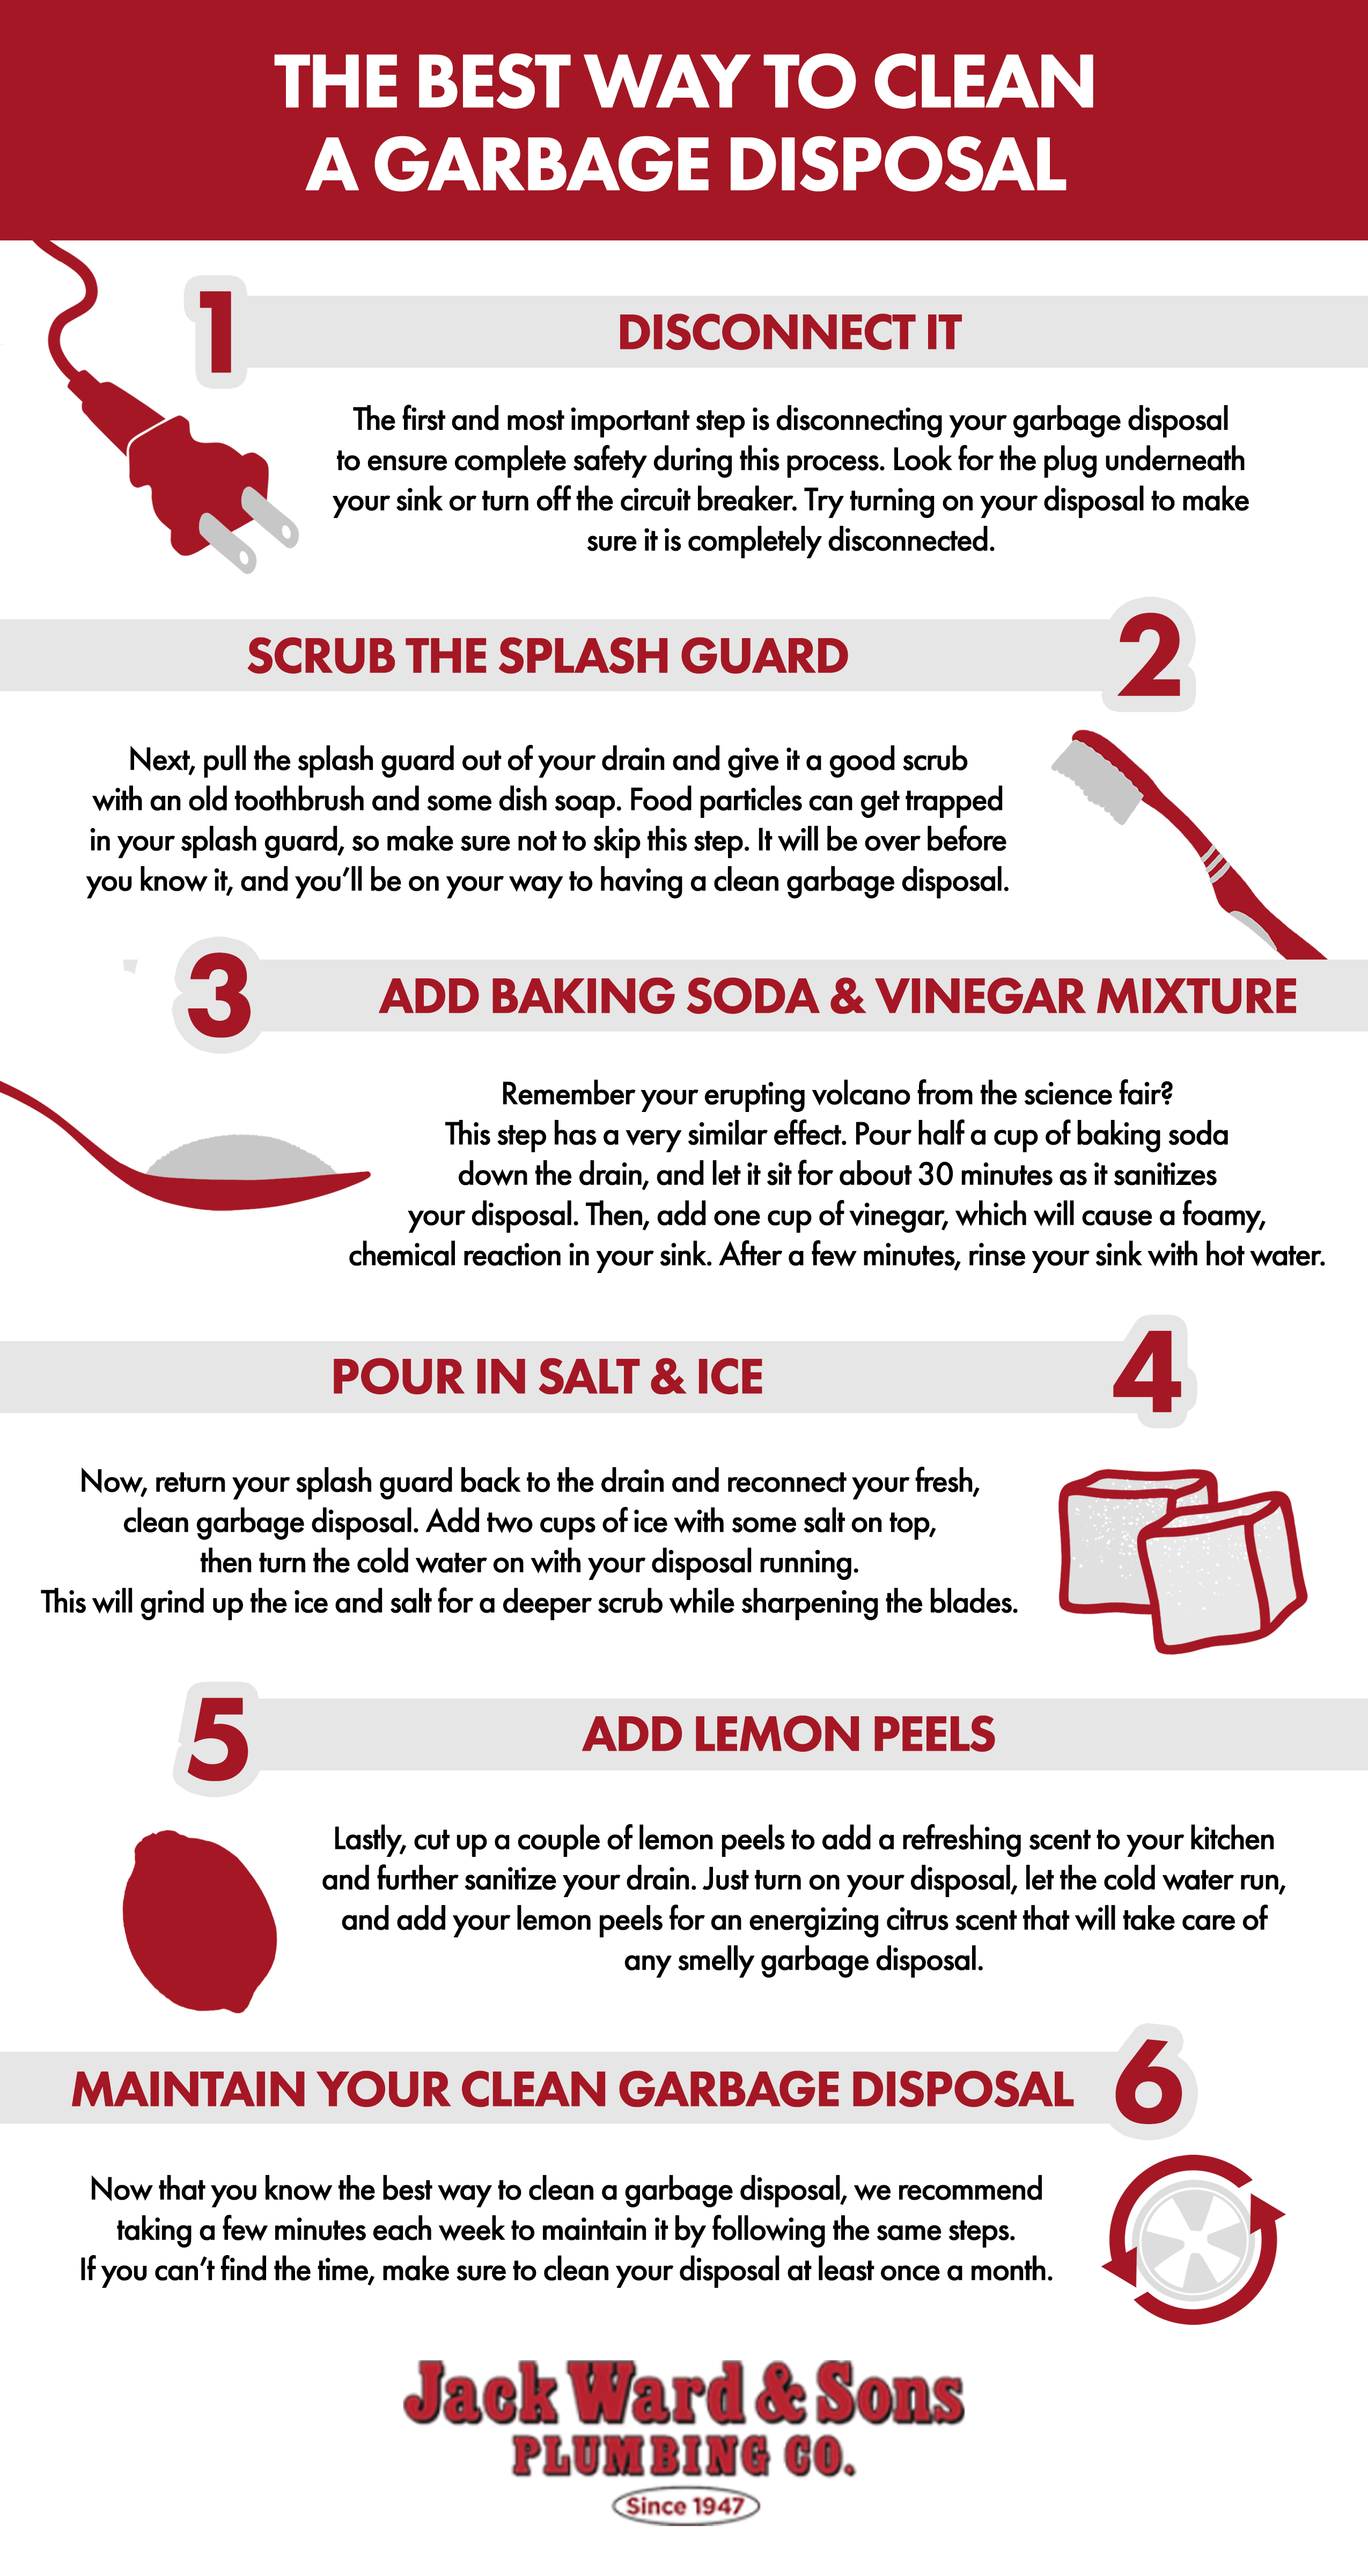 the best way to clean a garbage disposal infographic